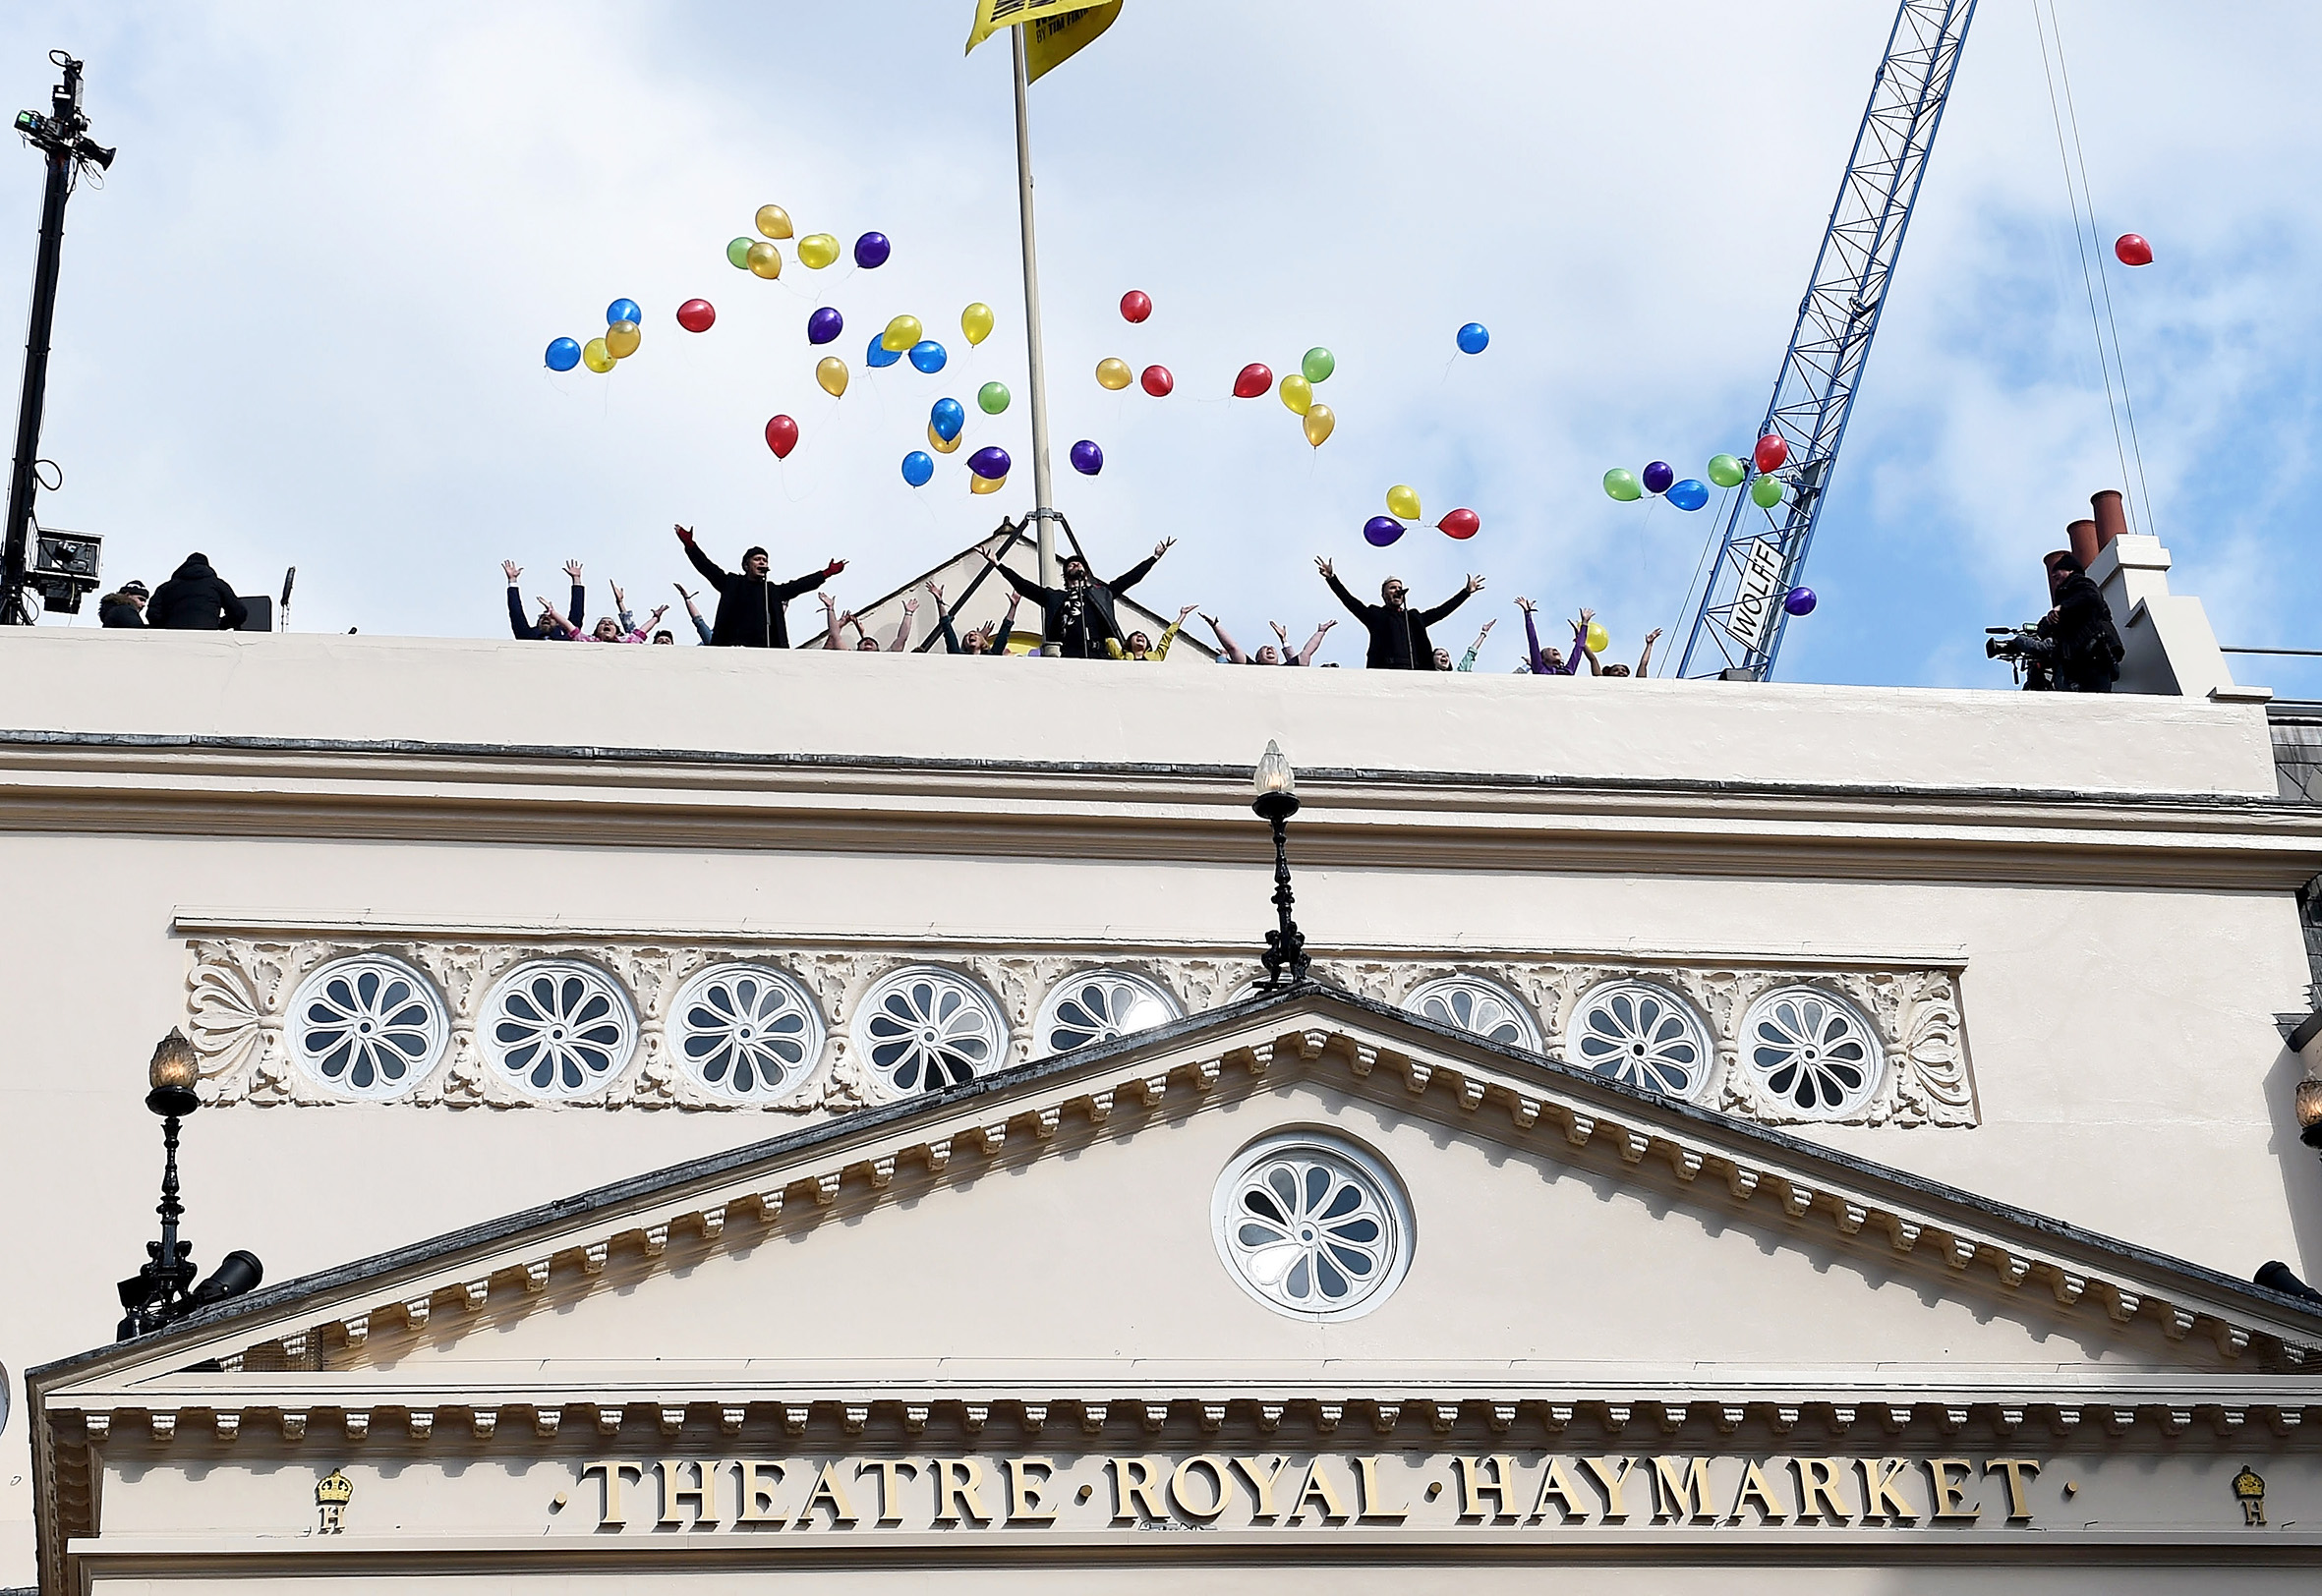 Photo of NEWS: Take That announce musical The Band's West End season with rooftop performance